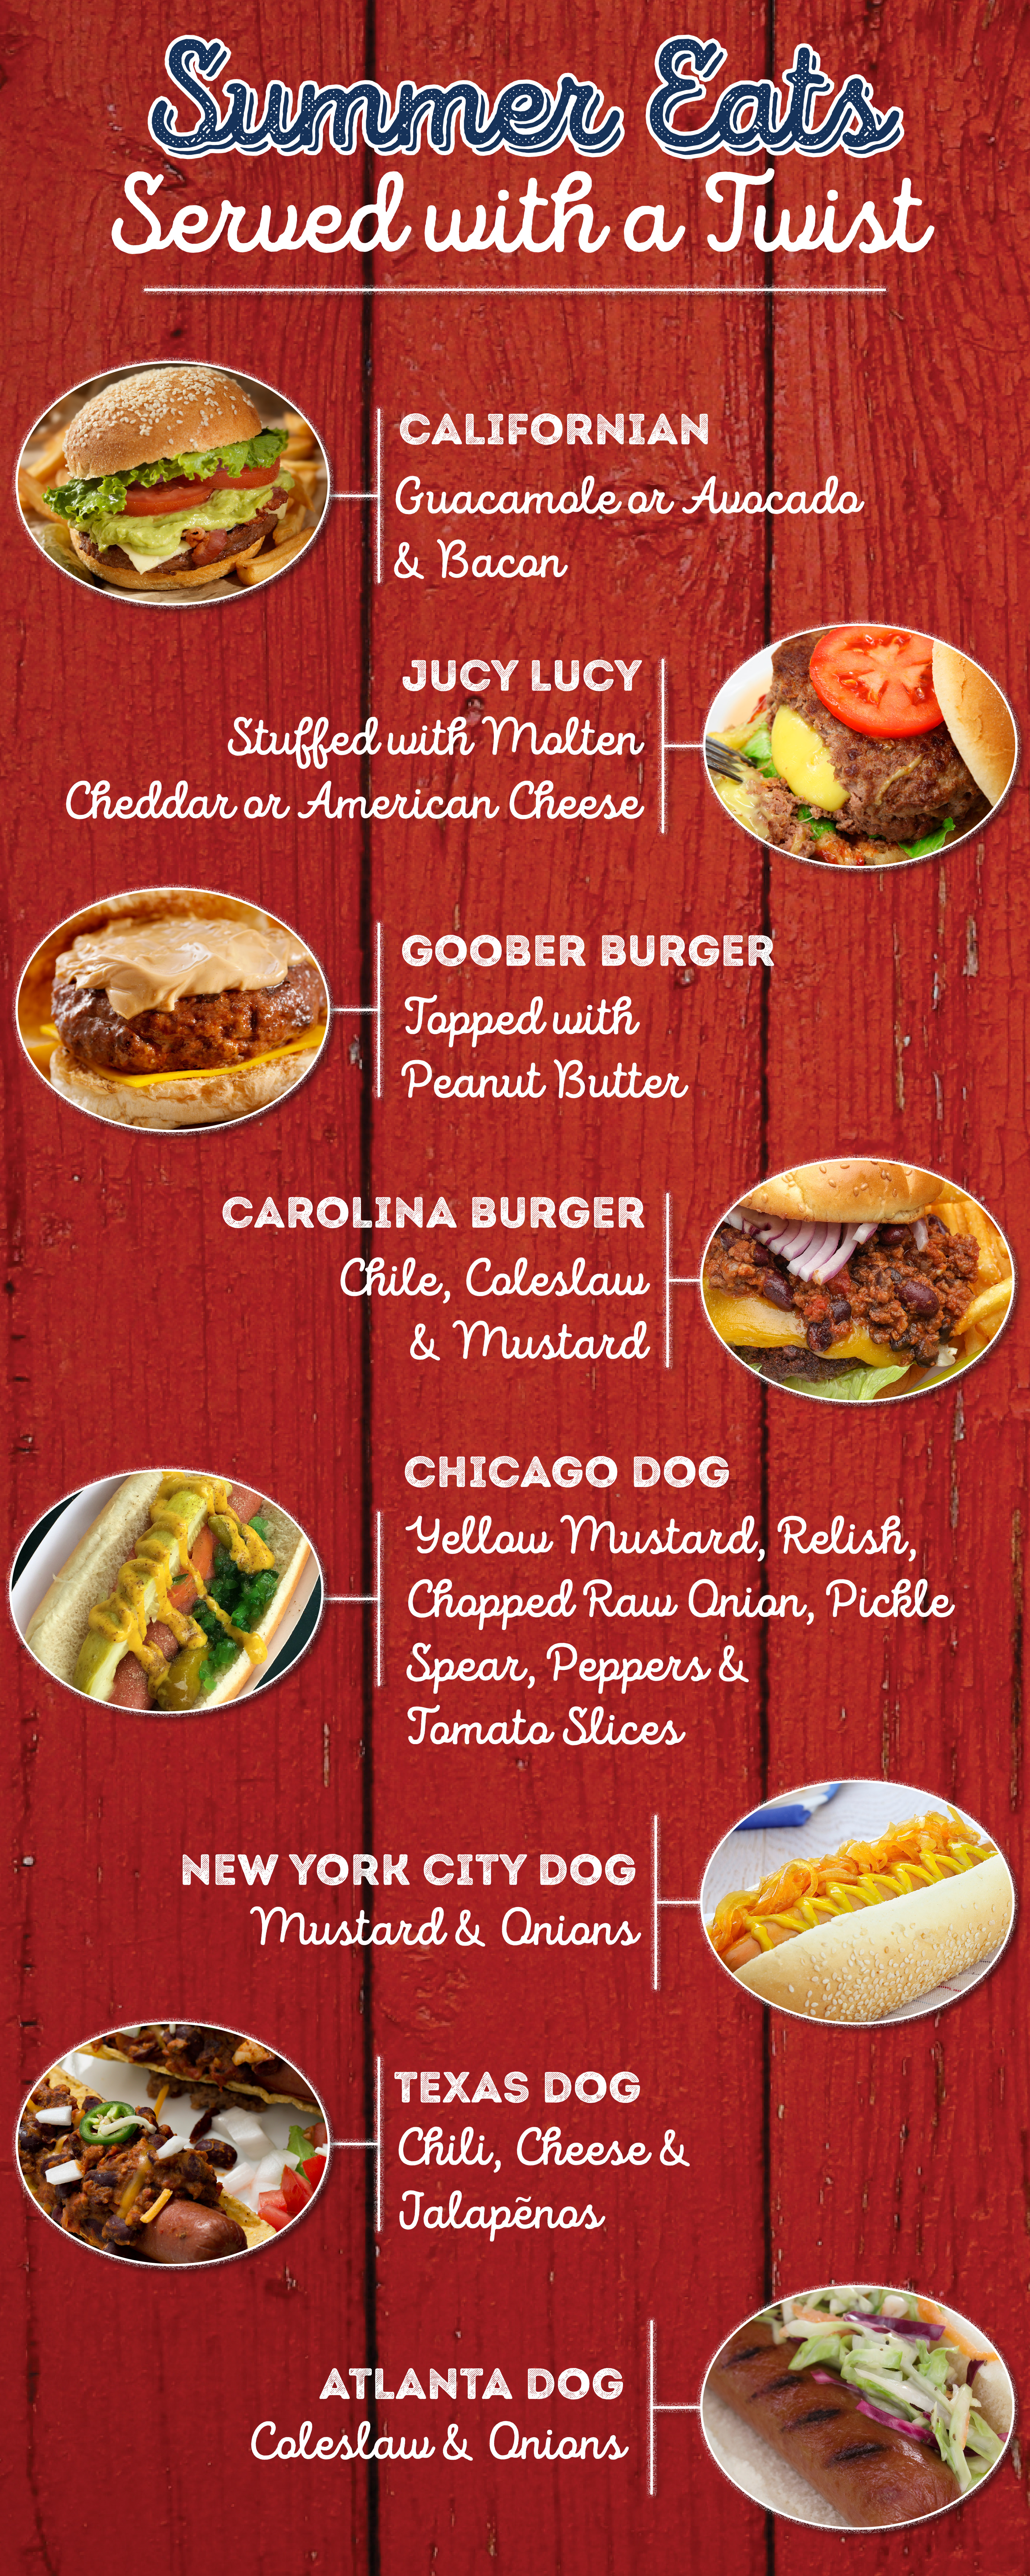 Regional and unique serving suggestions for hot dogs and hamburgers.